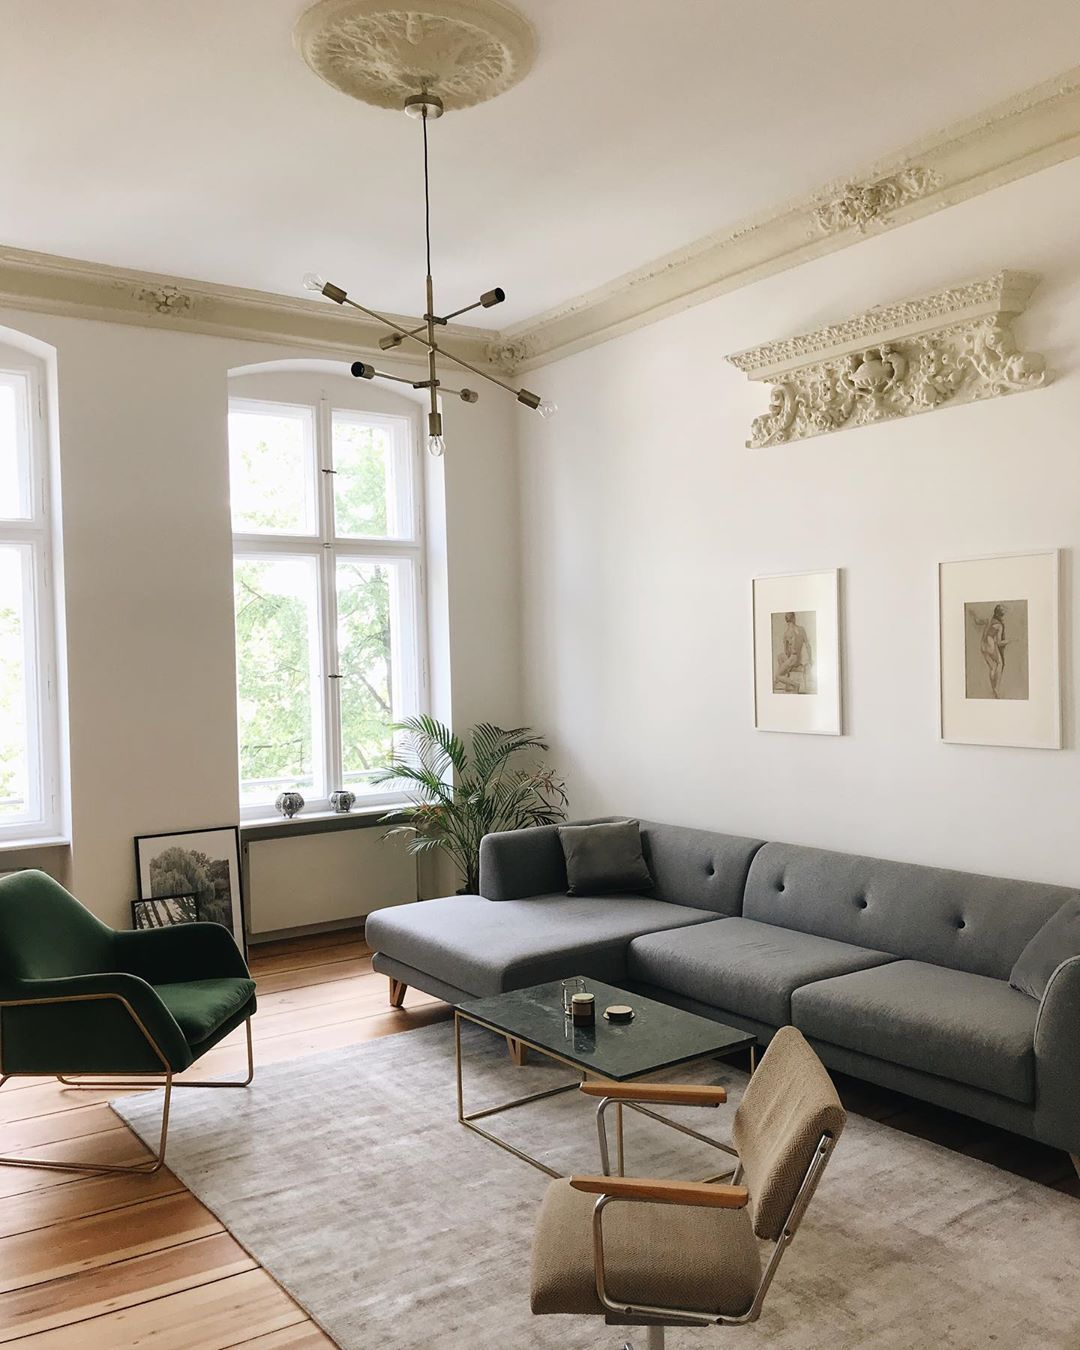 Philippa Sandberg On Instagram Somewhere I Would Like To Live Home Interior Anzeige In 2020 Home Interior Living Room